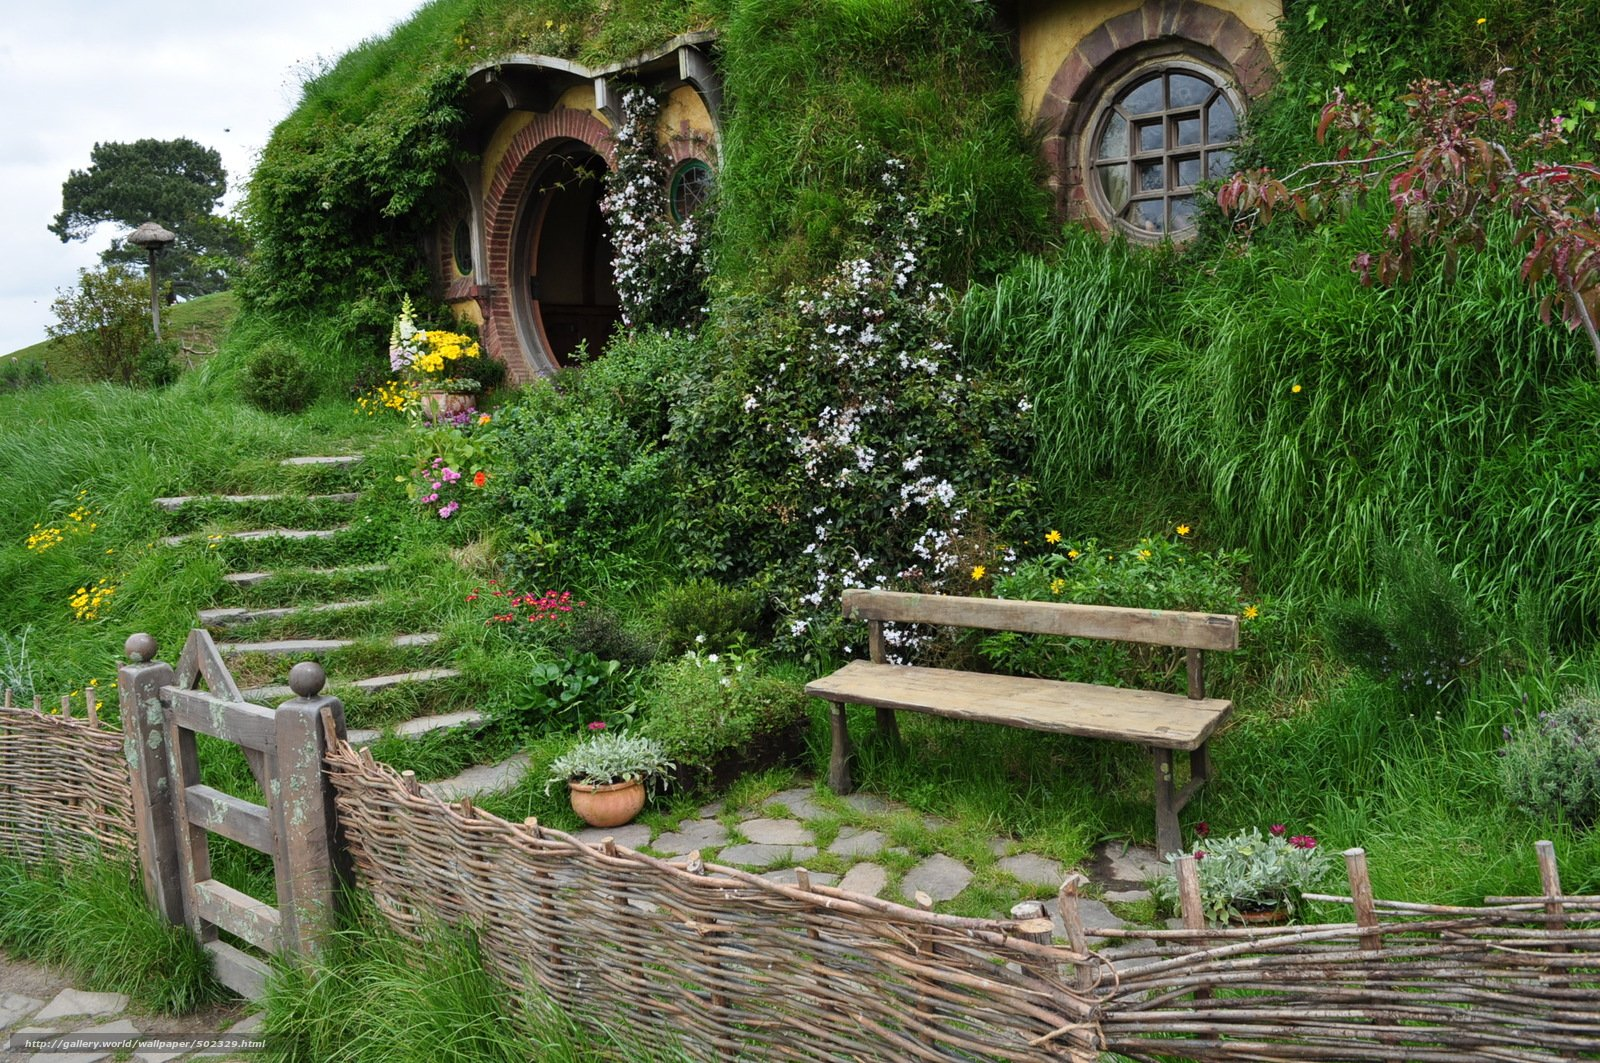 wallpaper new zealand Hobbit House landscape desktop wallpaper 1600x1063